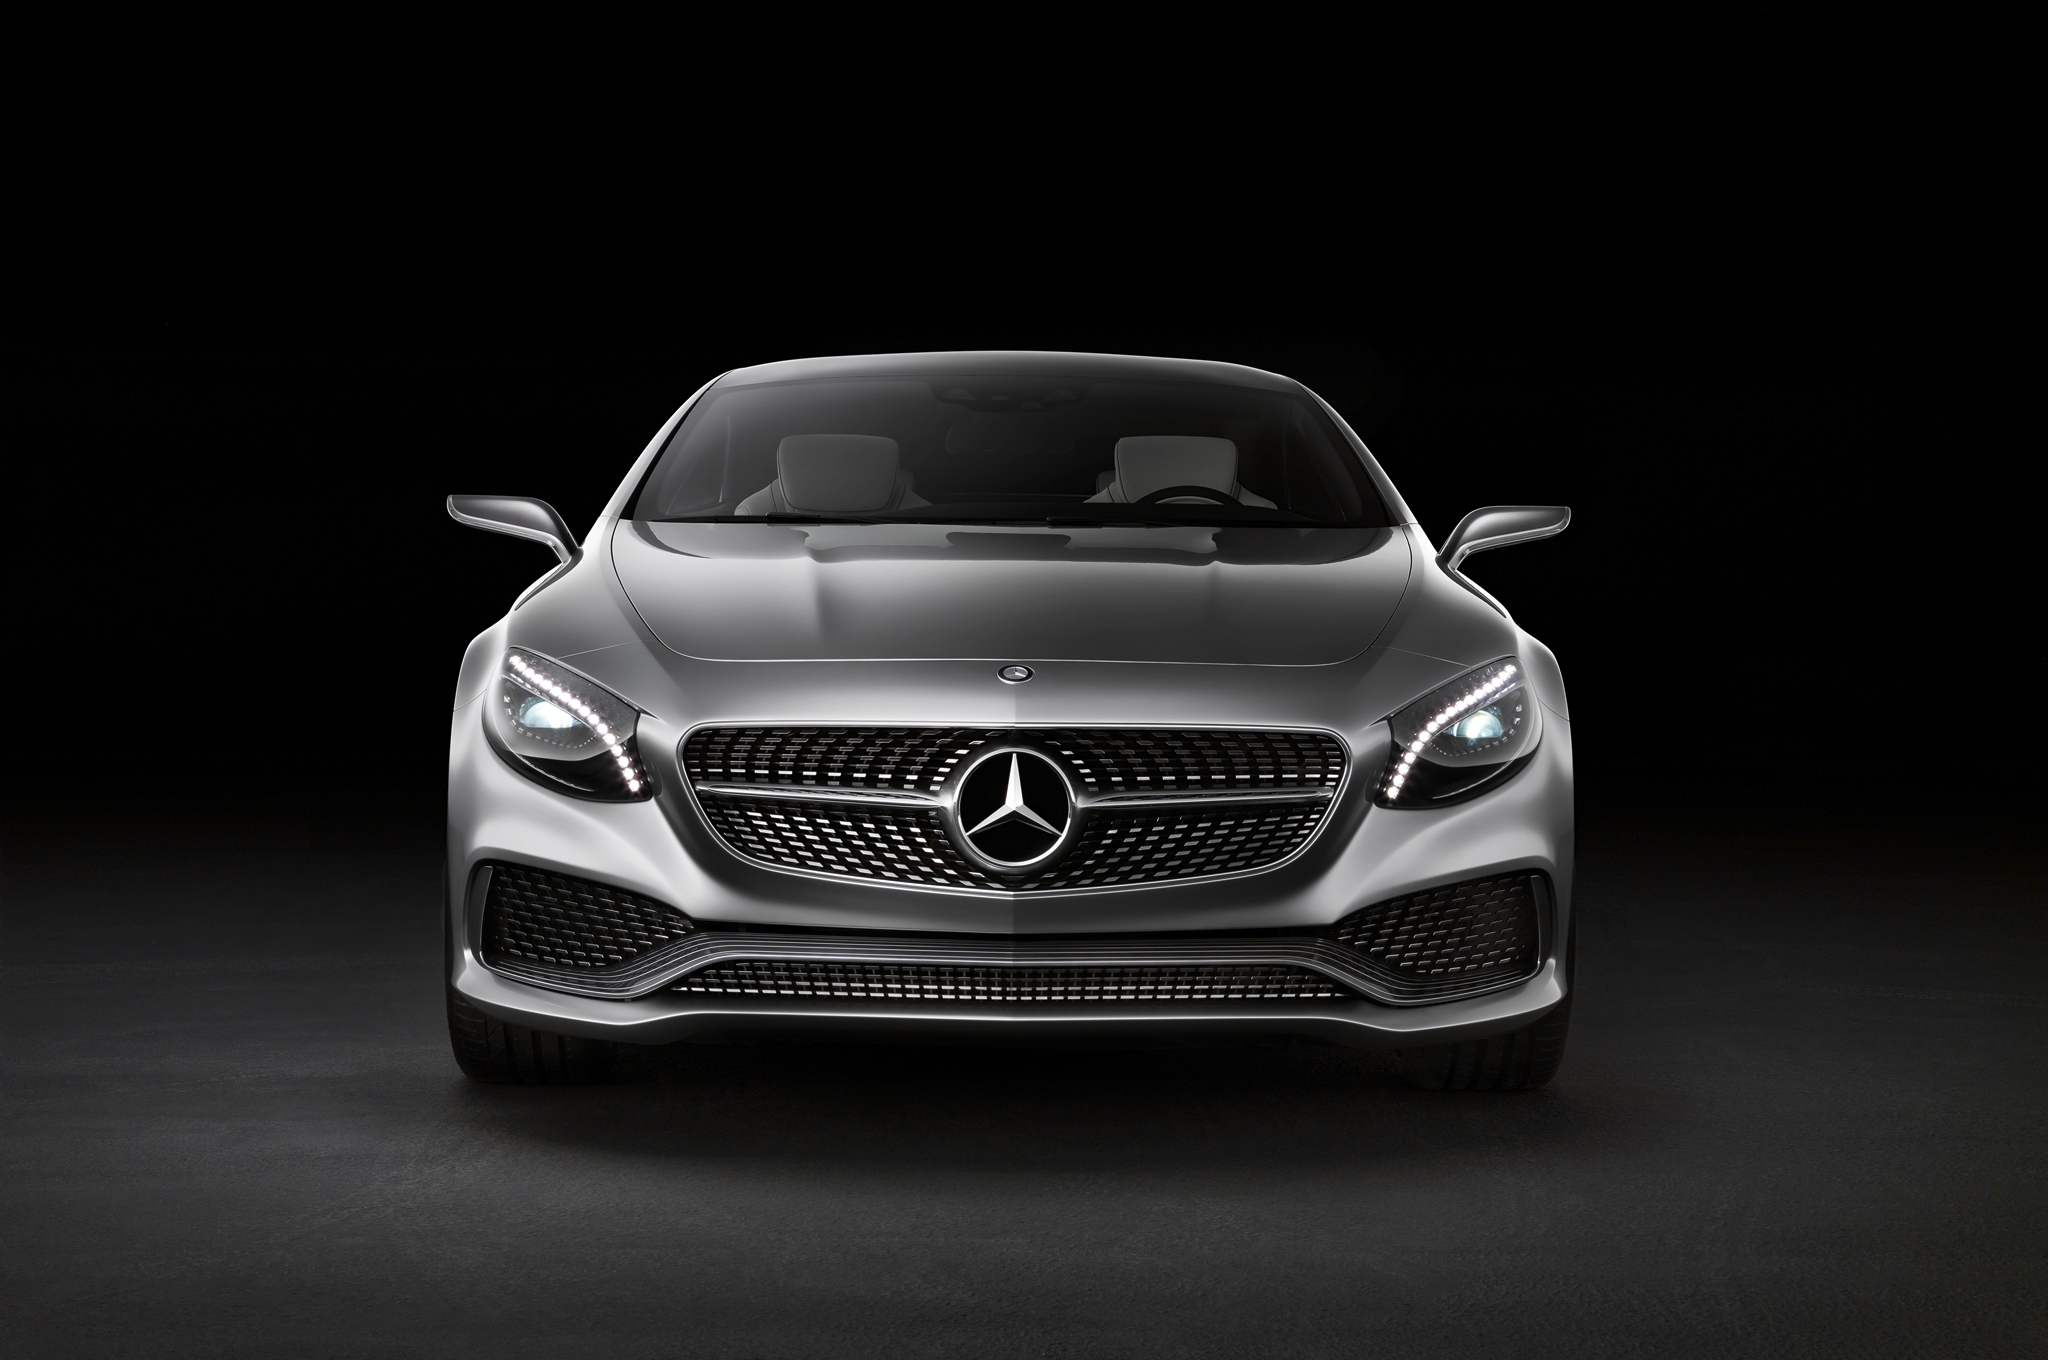 2019 Mercedes Benz S Class Coupe Concept photo - 3